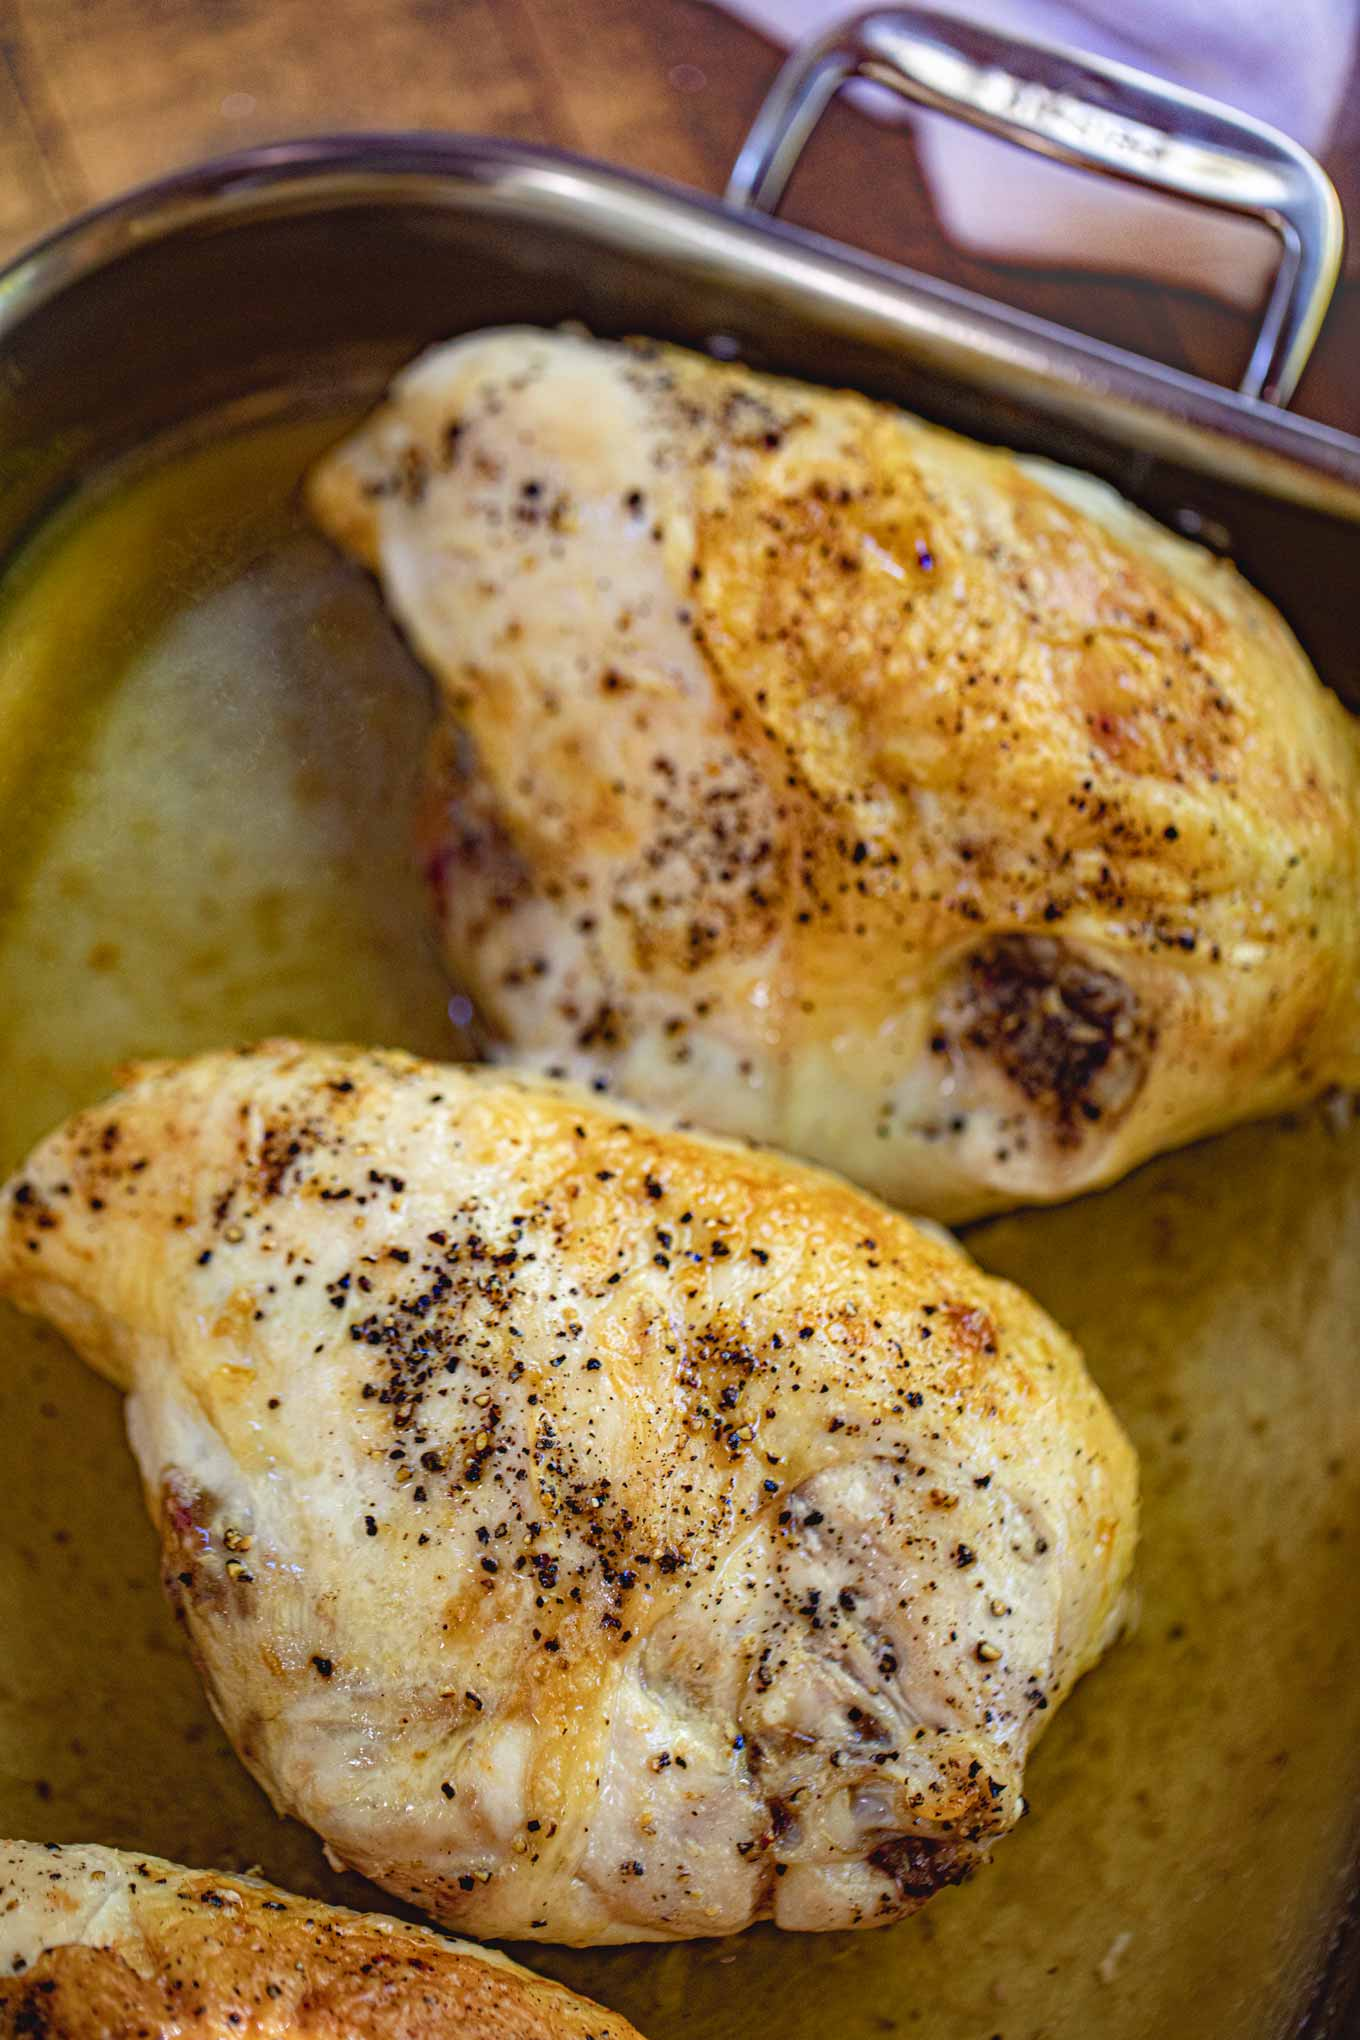 Baked Chicken Breasts with rib bones and skin